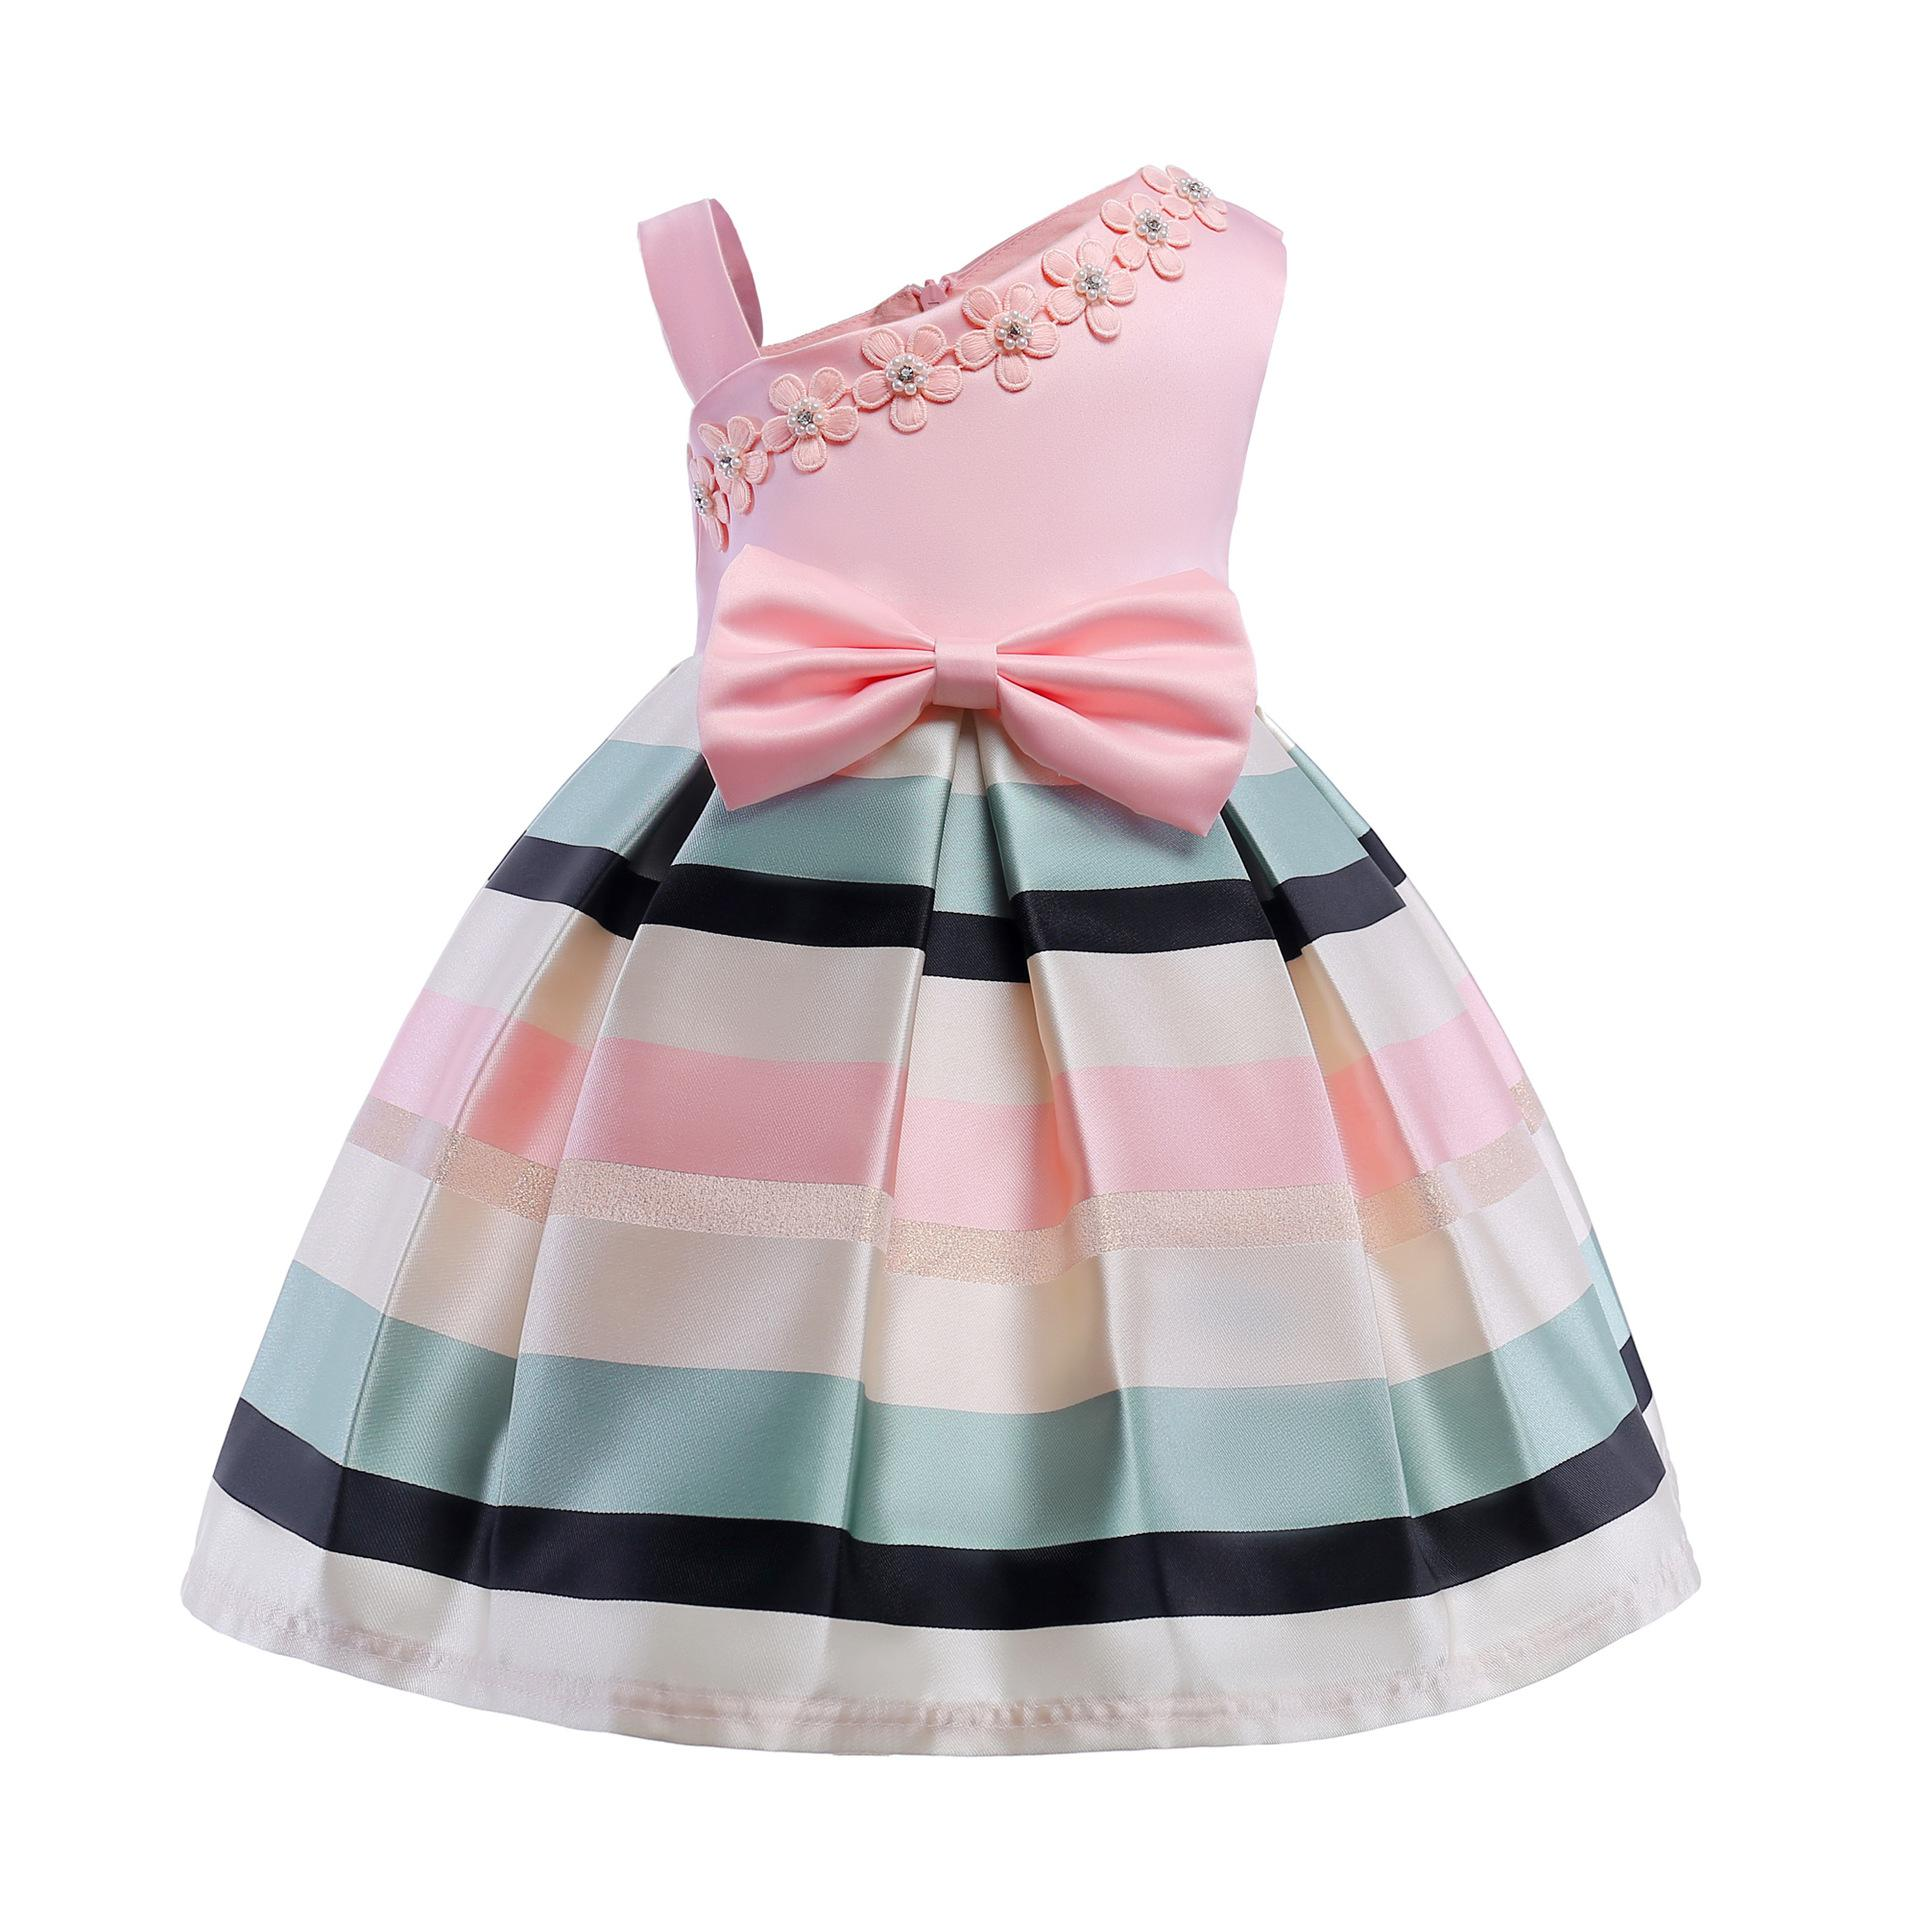 540e516dd108 New Hot Sale Girl Elegant Princess Dress Bow Folds Pearl Flower Horizontal  Stripes One Shoulder Party Wedding Evening Birthday Skirt for 3-9 Years ...